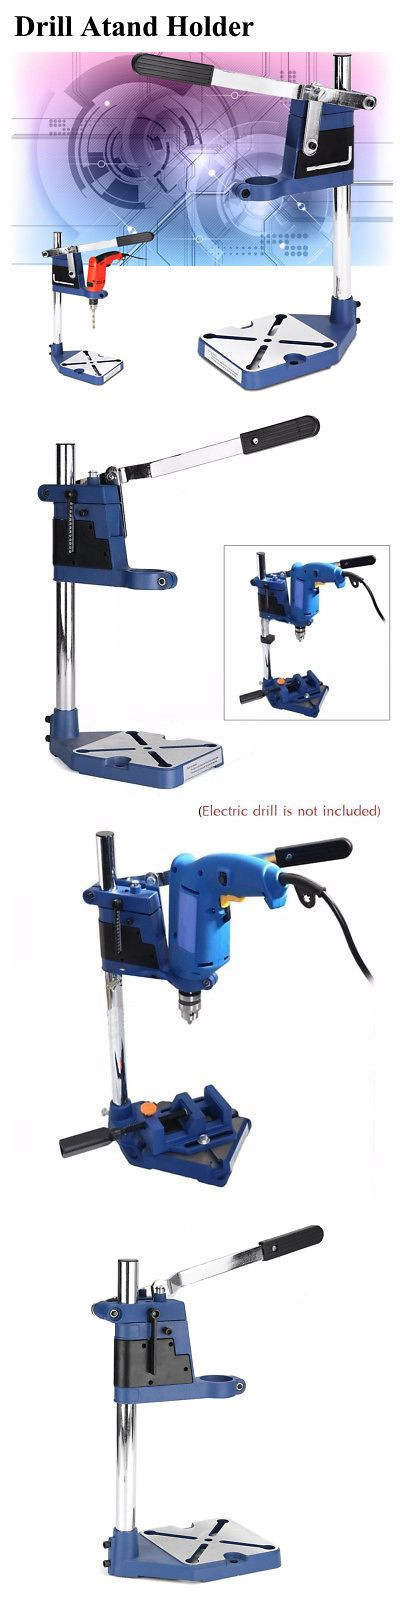 Drill Presses 71296 Bench Drill Press Stand Holder Clamp Base Frame For Electric Power Drill Machine Buy It Now Only 30 96 Drill Press Stand Drill Press Drill